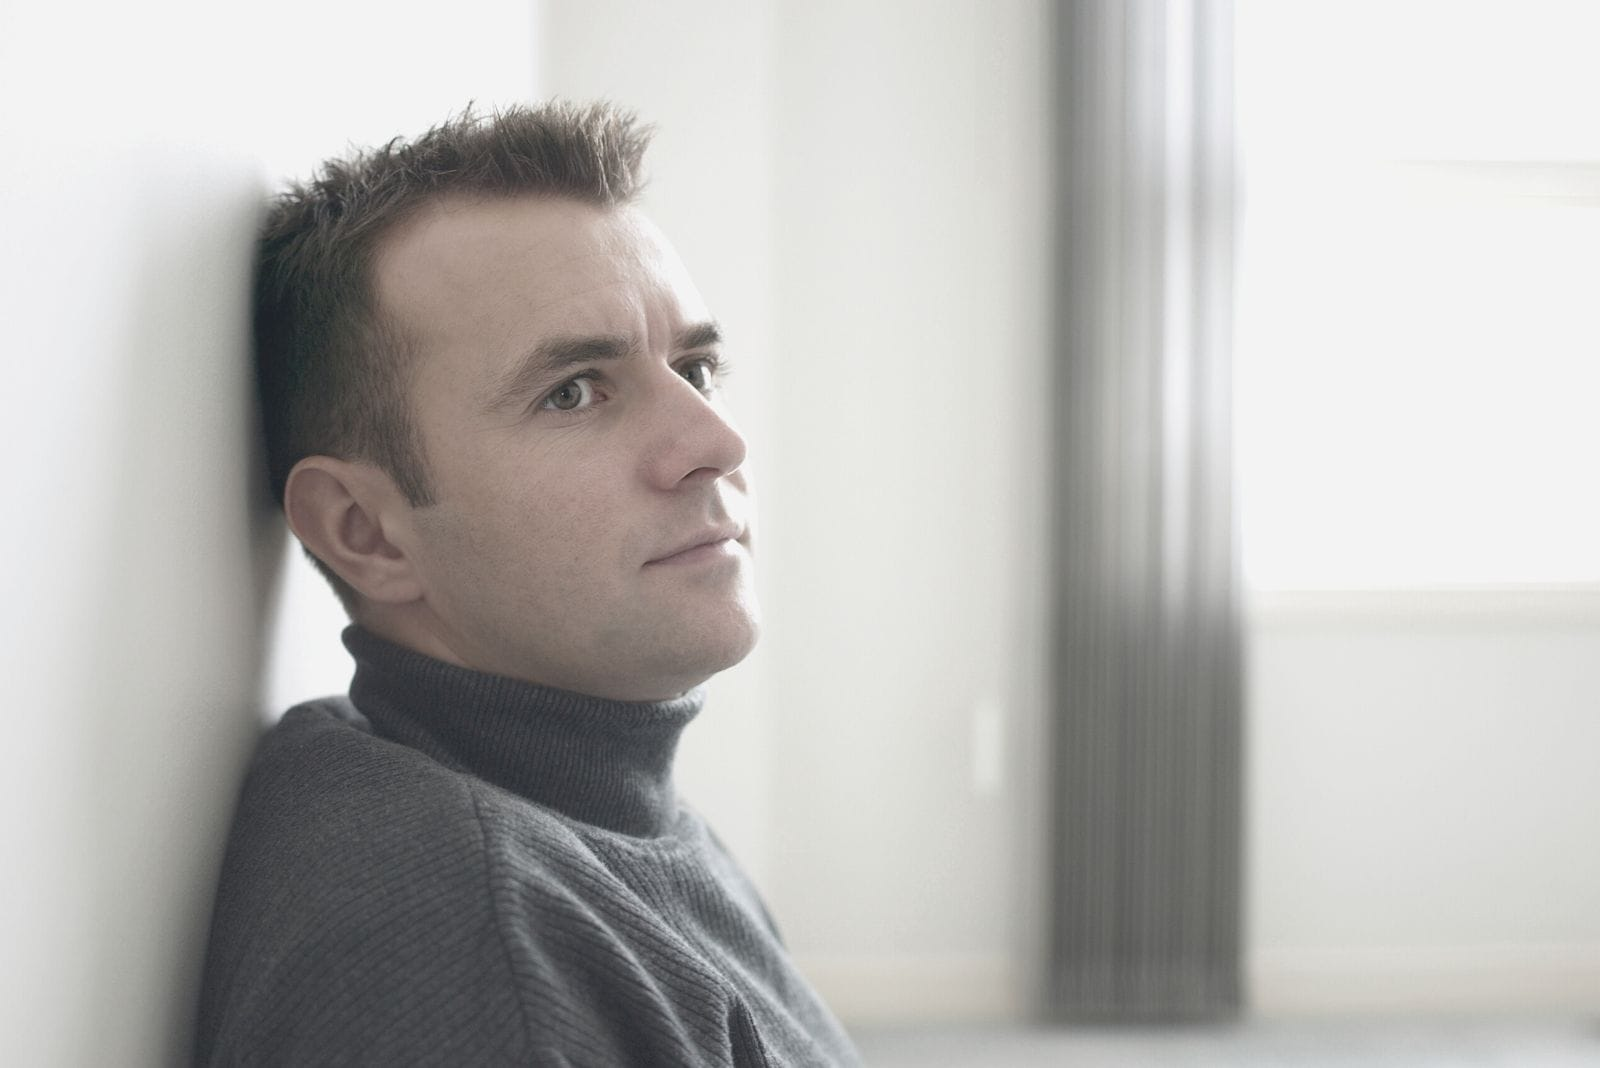 pensive man leaning on the white wall inside the house in close image